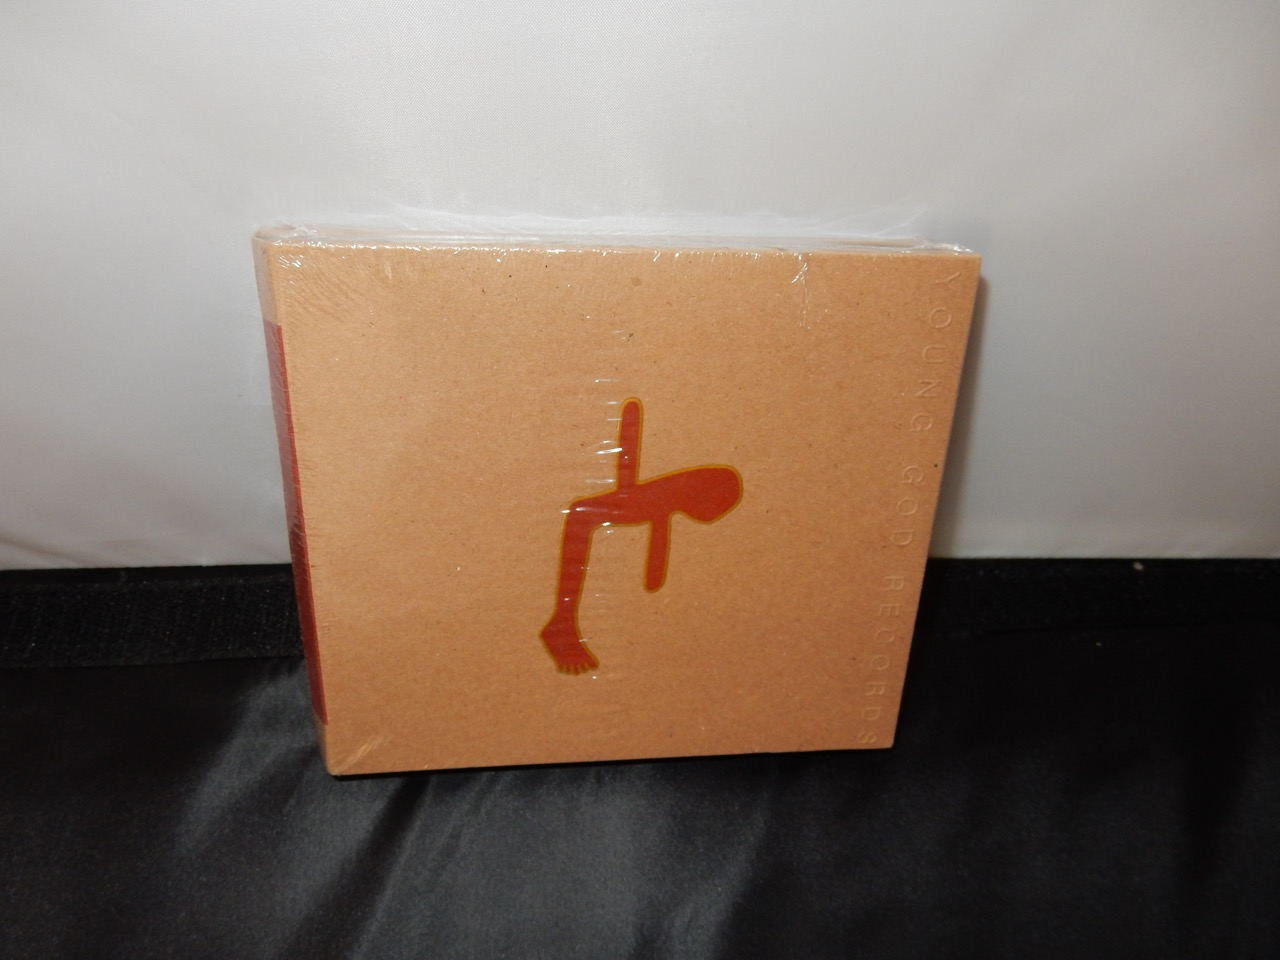 Swans - Glowing Man Deluxe - CD/DVD combo with Live Show